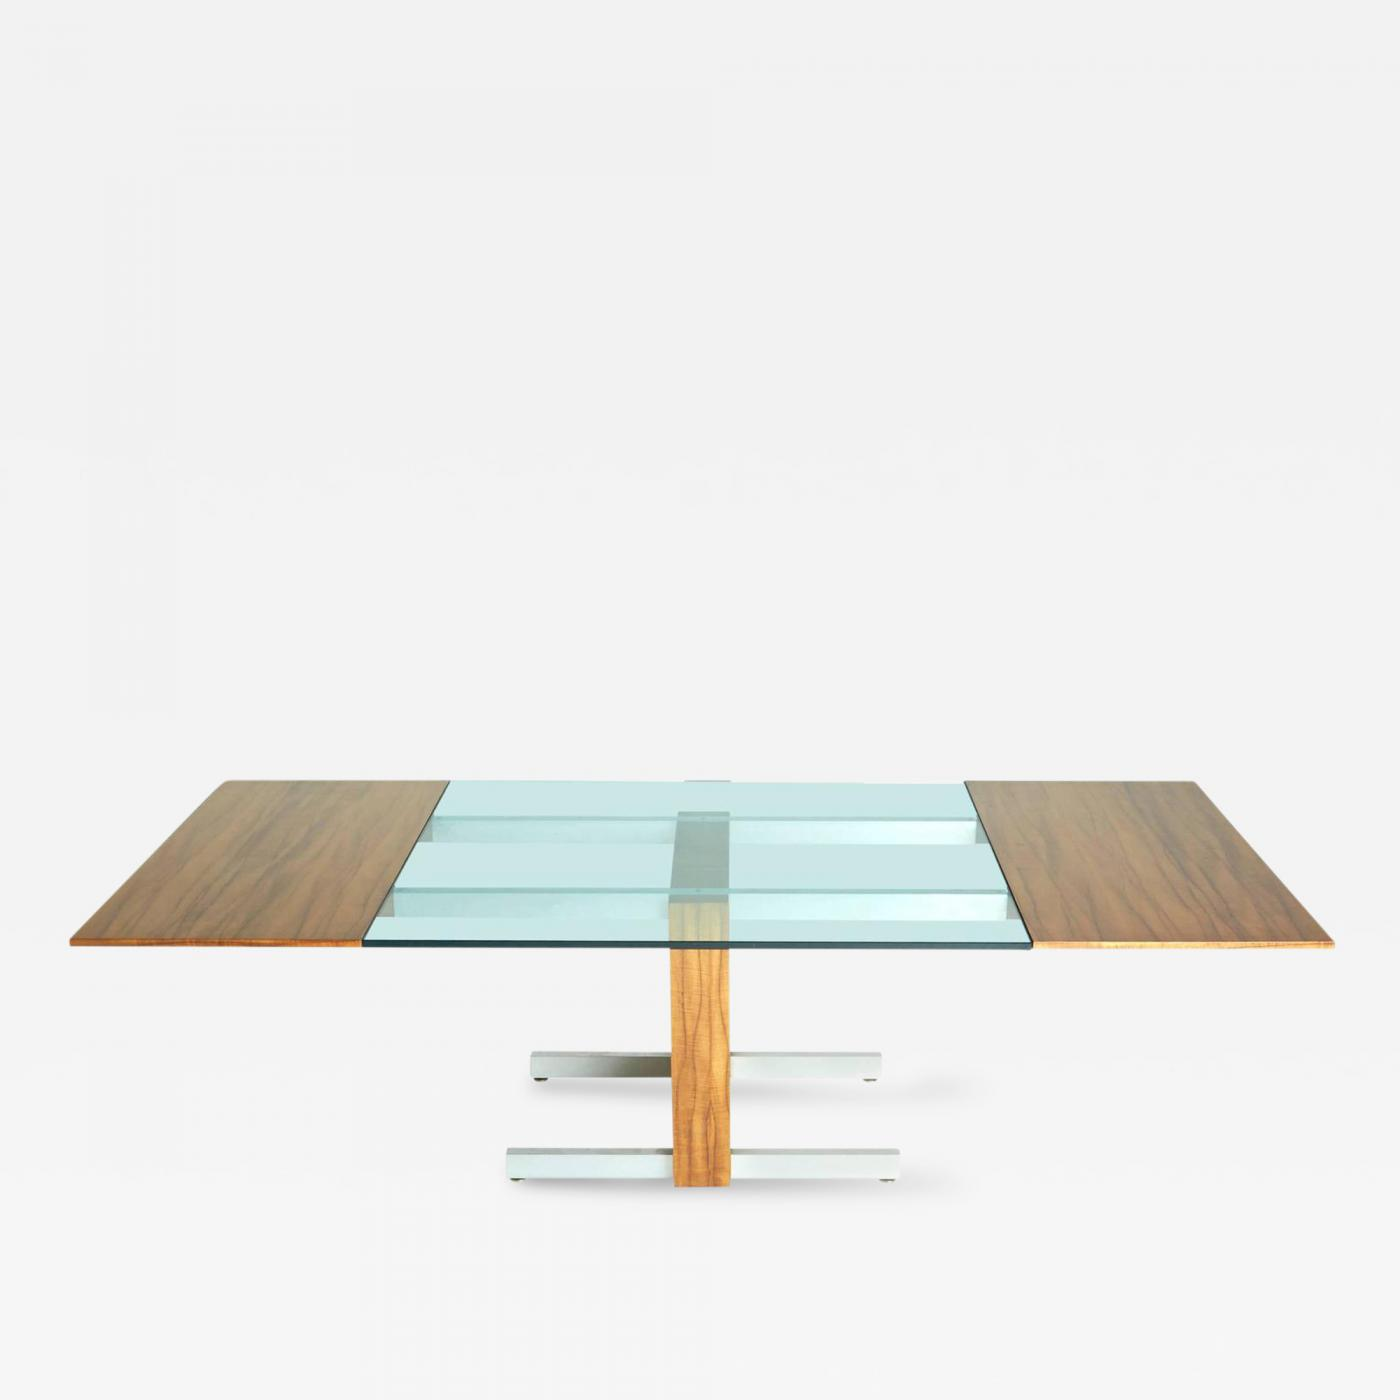 Listings / Furniture / Tables / Dining Tables